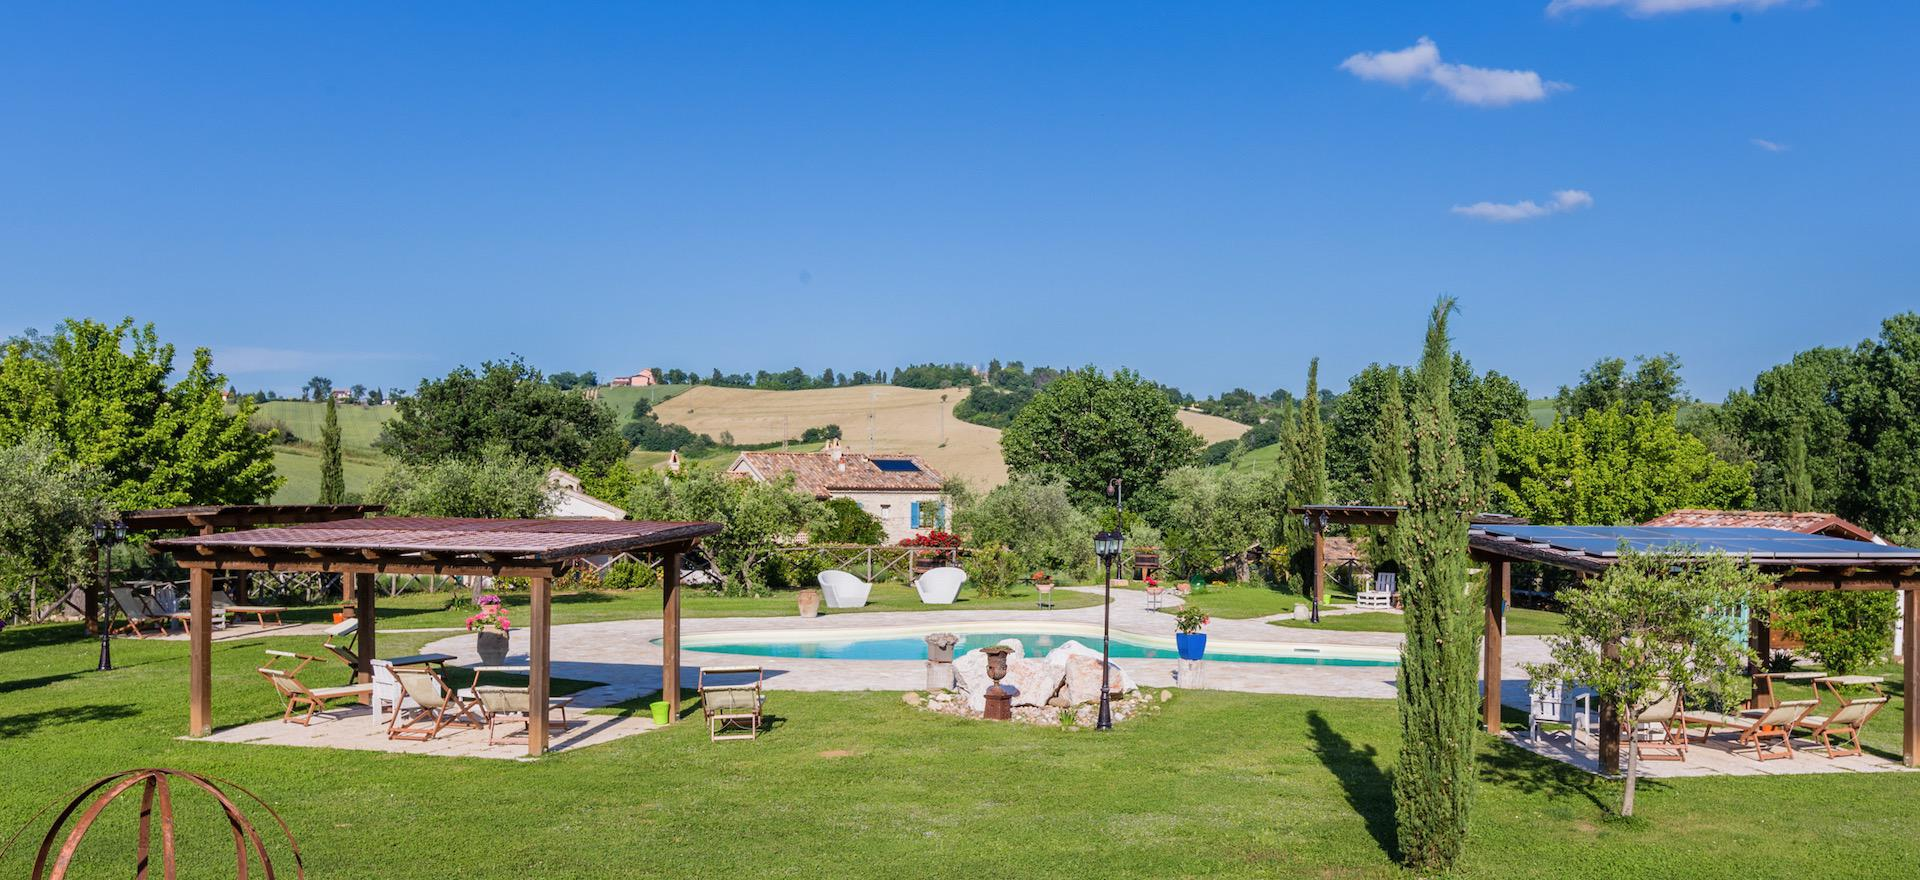 Knusse agriturismo bij authentiek dorpje in le Marche